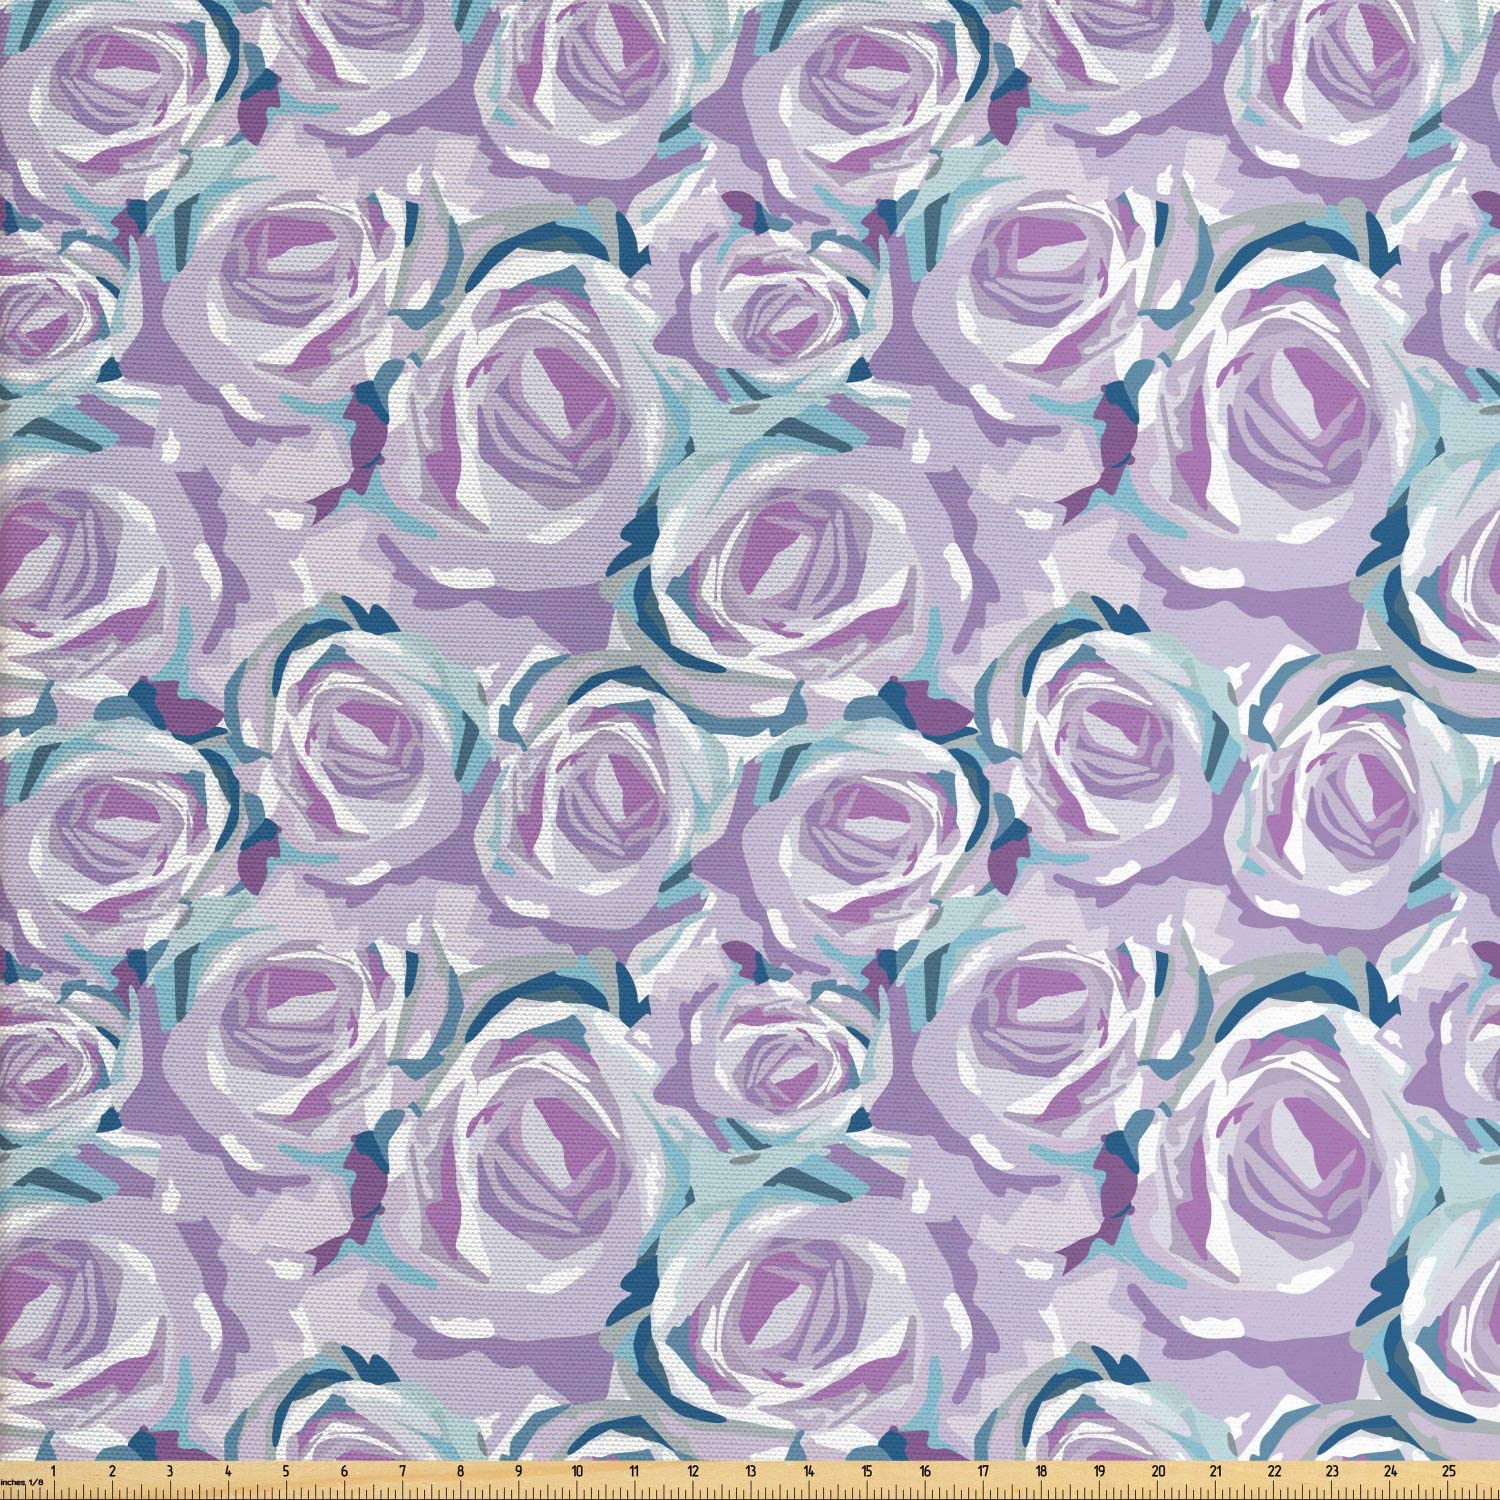 Ambesonne Floral Fabric by The Yard, Overview Pattern of Romantic Roses, Decorative Fabric for Upholstery and Home Accents, 1 Yard, Mauve Seafoam